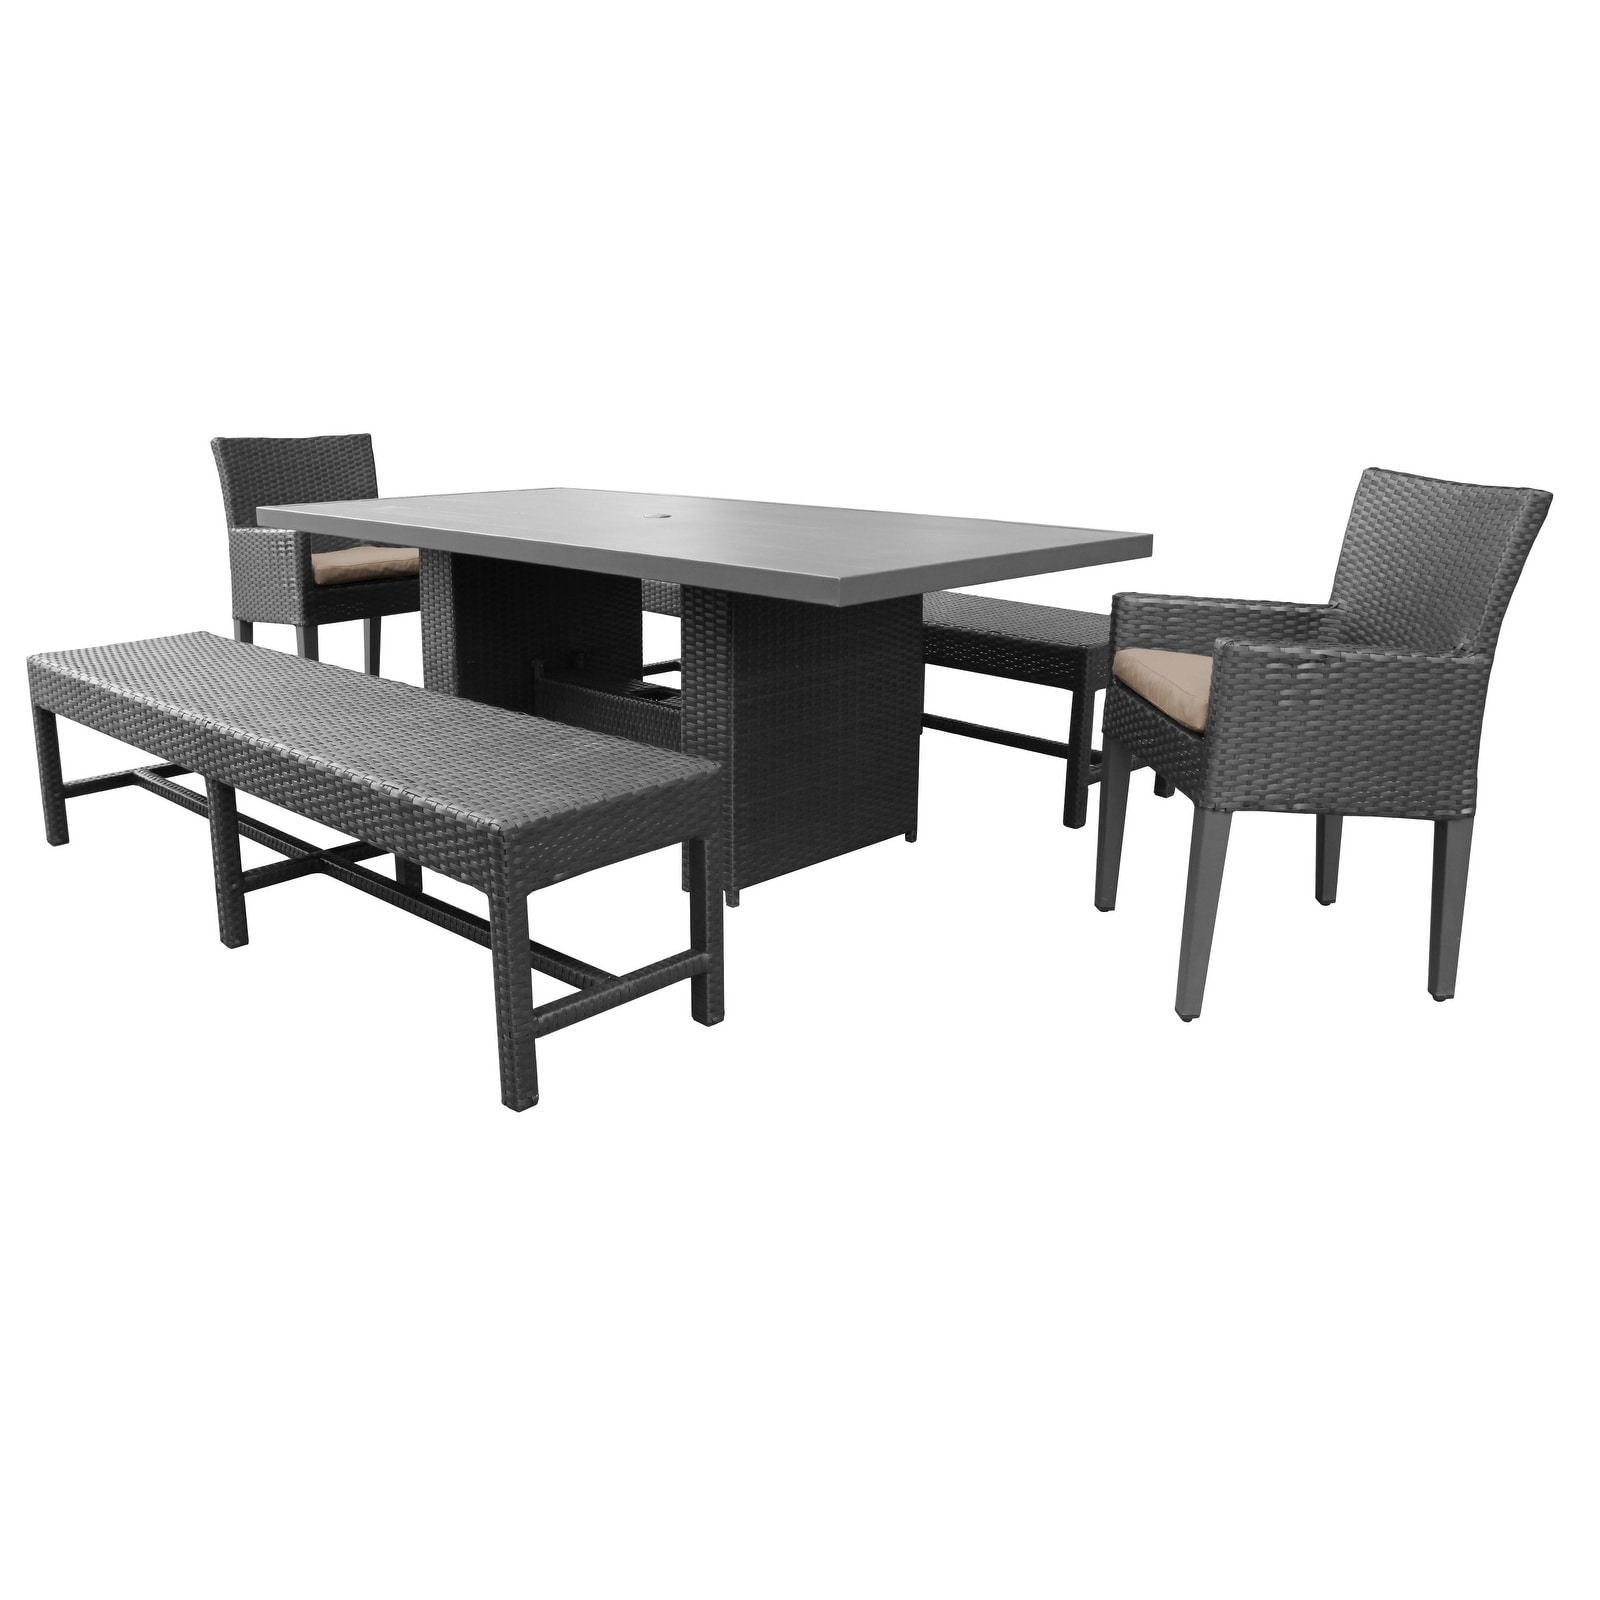 Barbados Rectangular Outdoor Patio Dining Table With 2 Chairs W/ Arms And 2  Benches